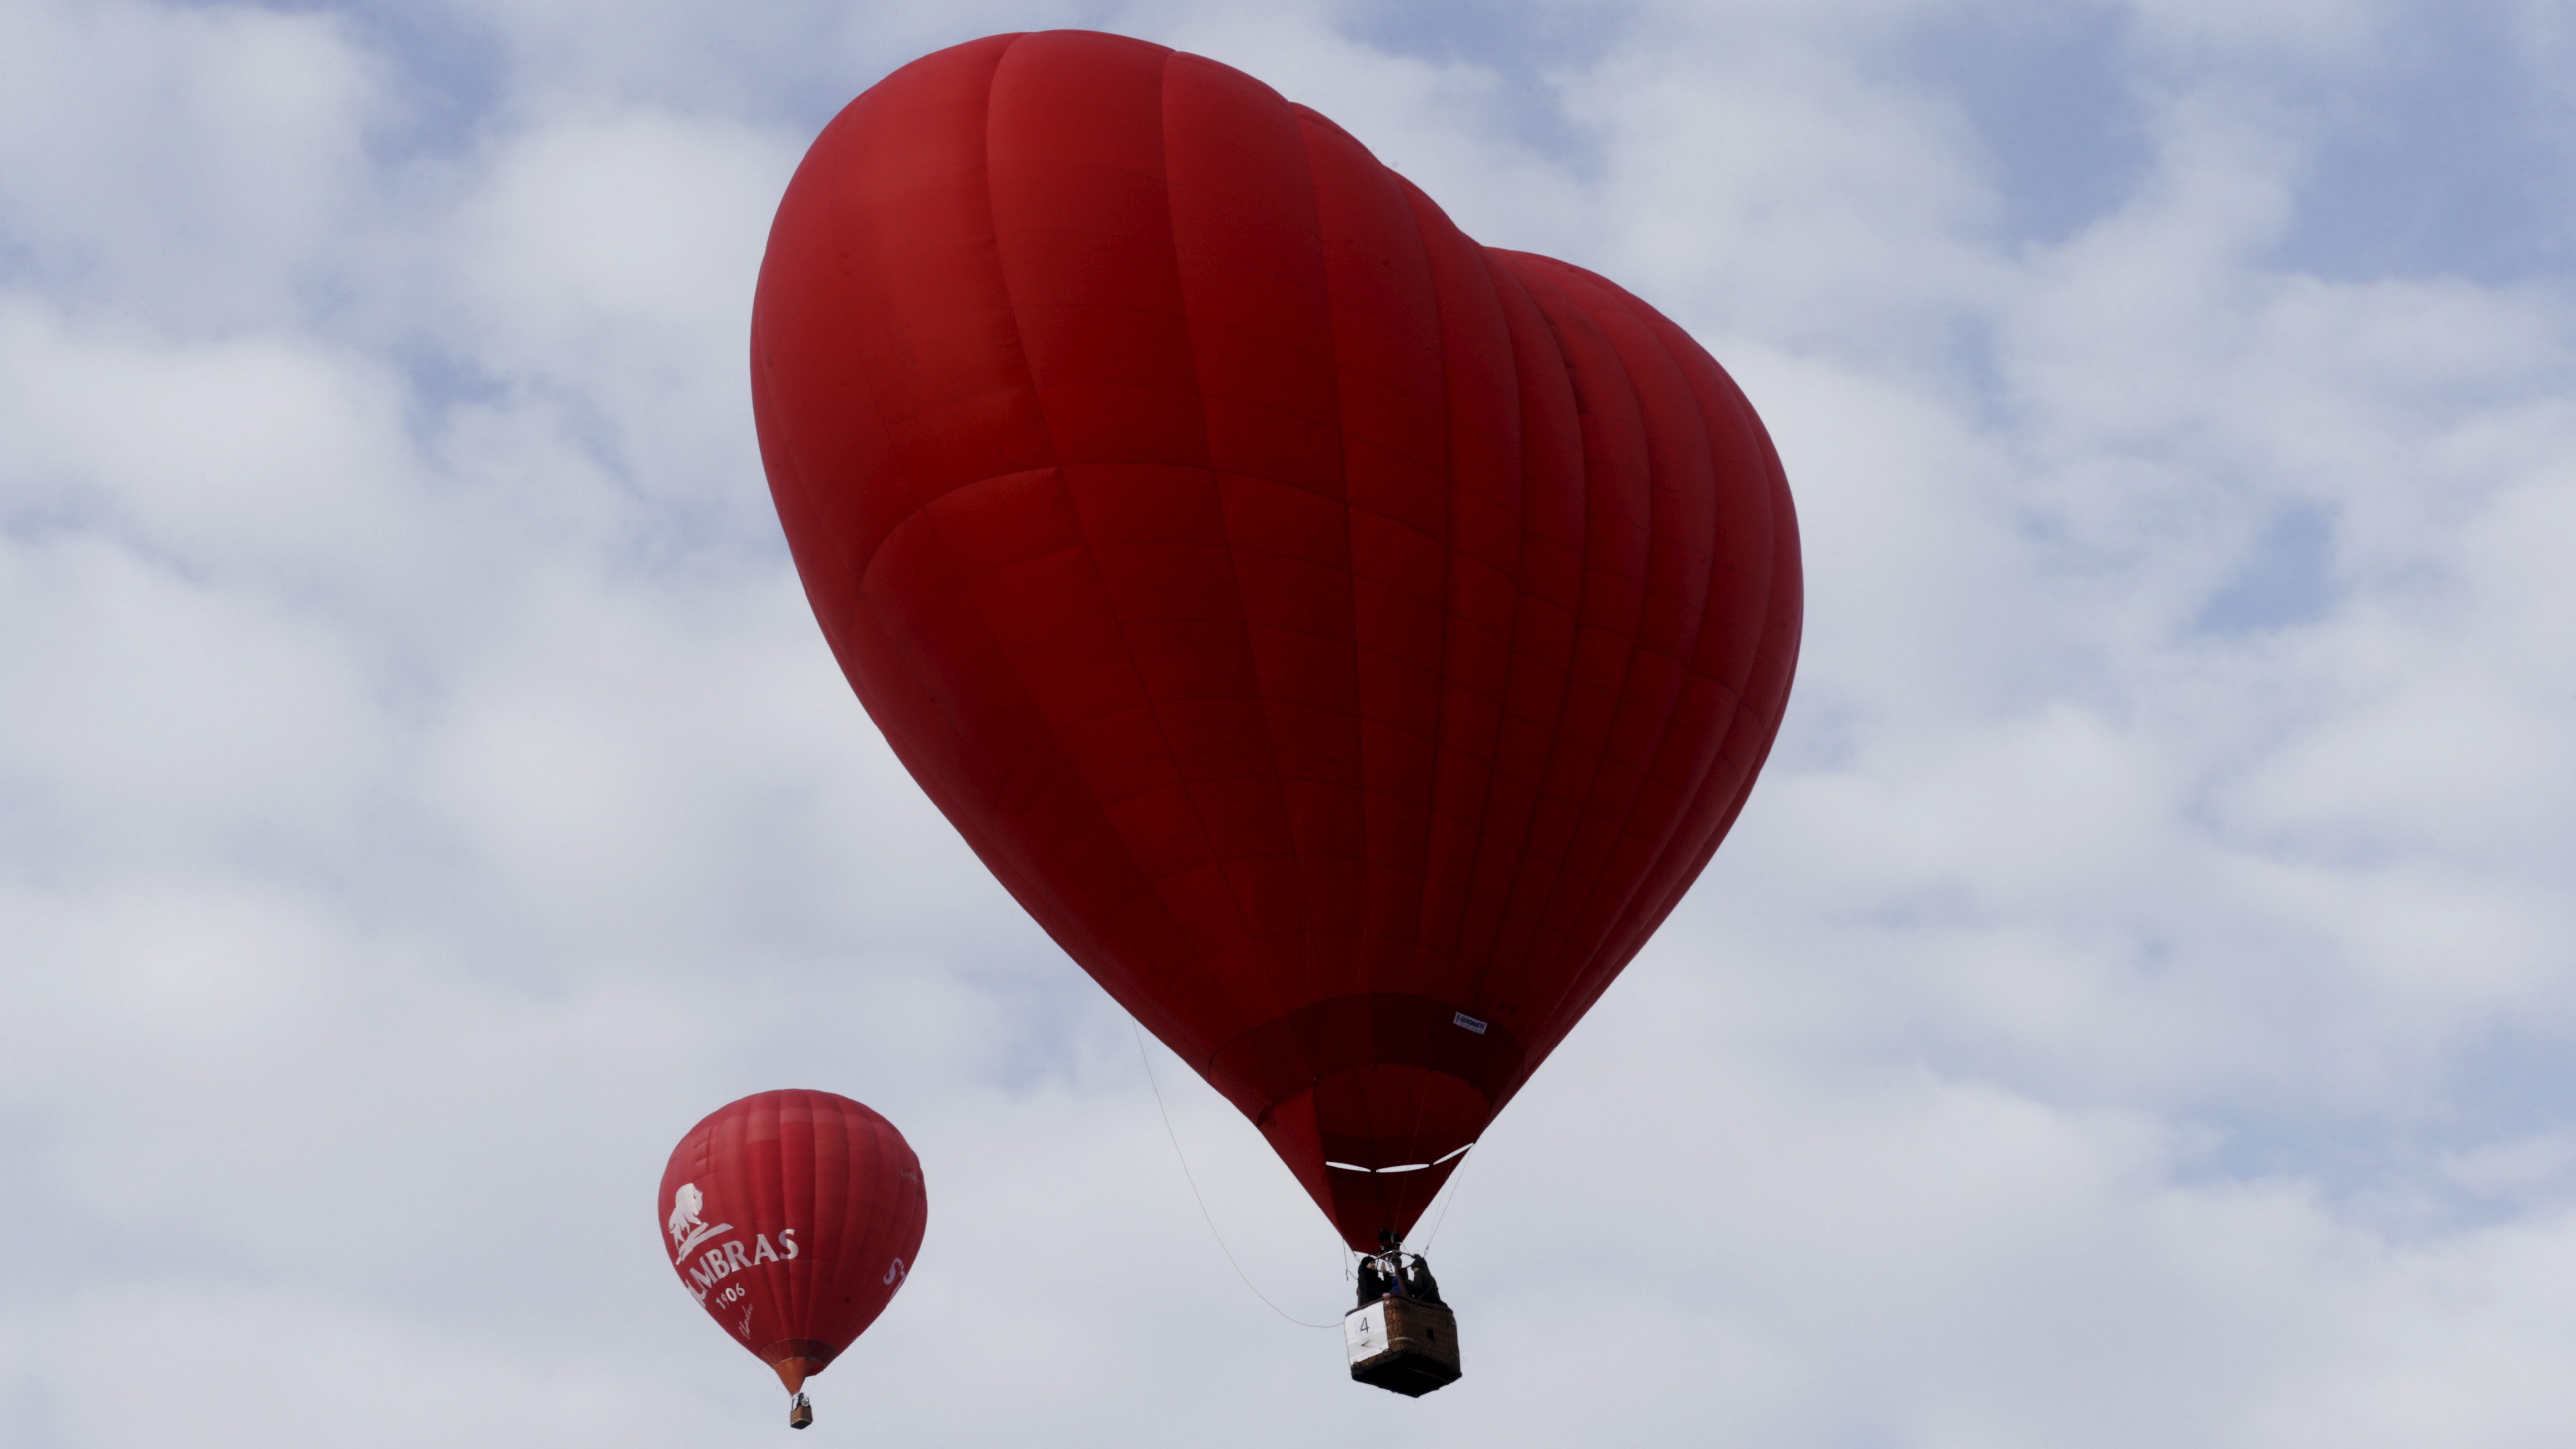 A giant red heart balloon floats in the air